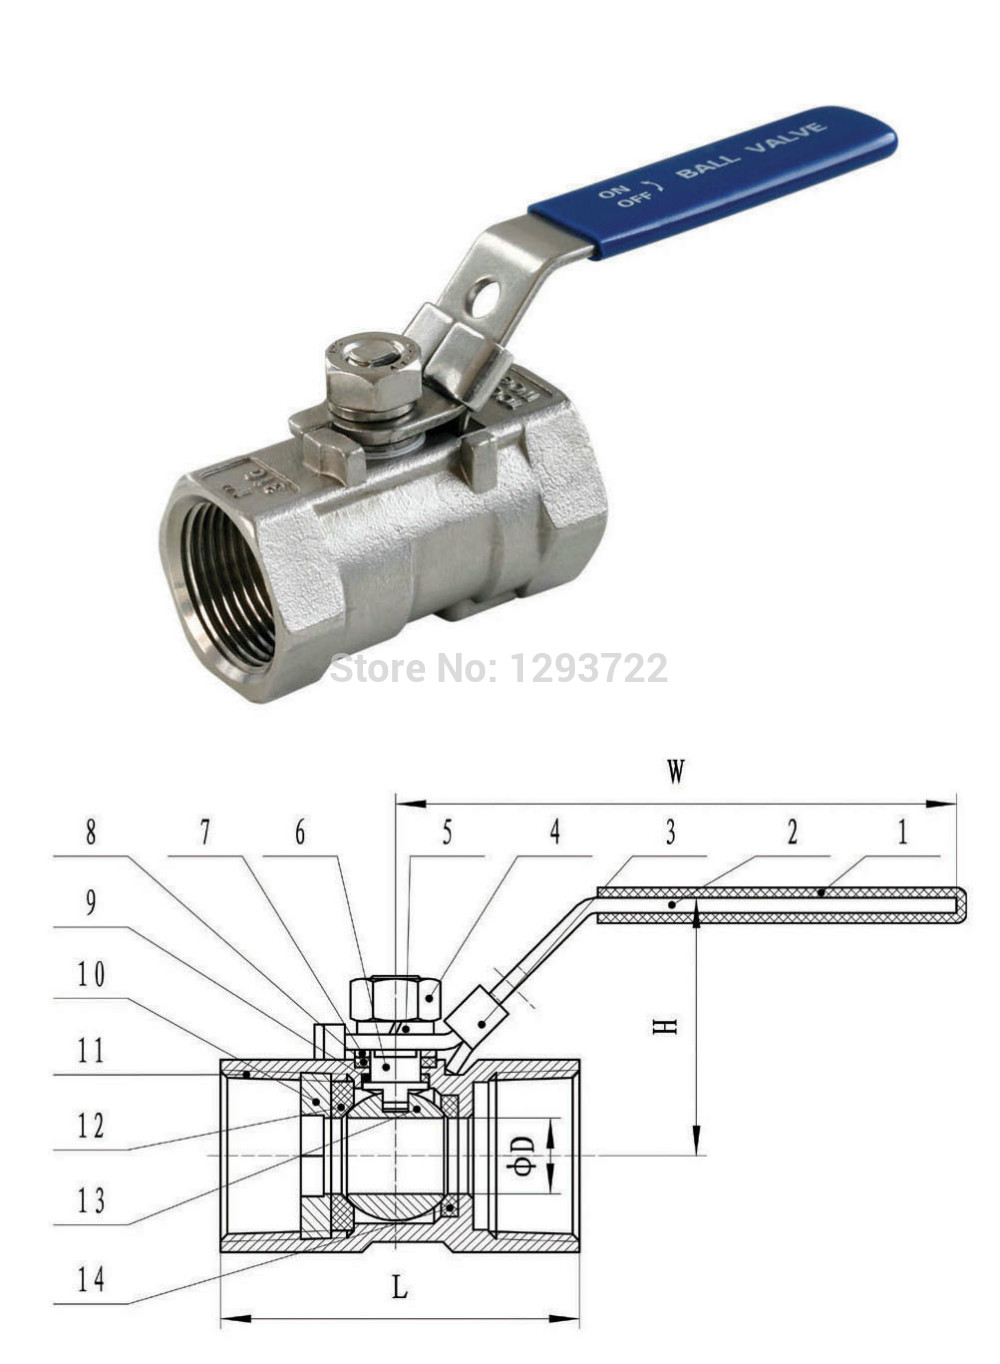 medium resolution of 1 1 4 dn32 stainless steel 1 piece ball valve ss304 economical water valve stainless steel ball valve ball valve dn20 in valve from home improvement on